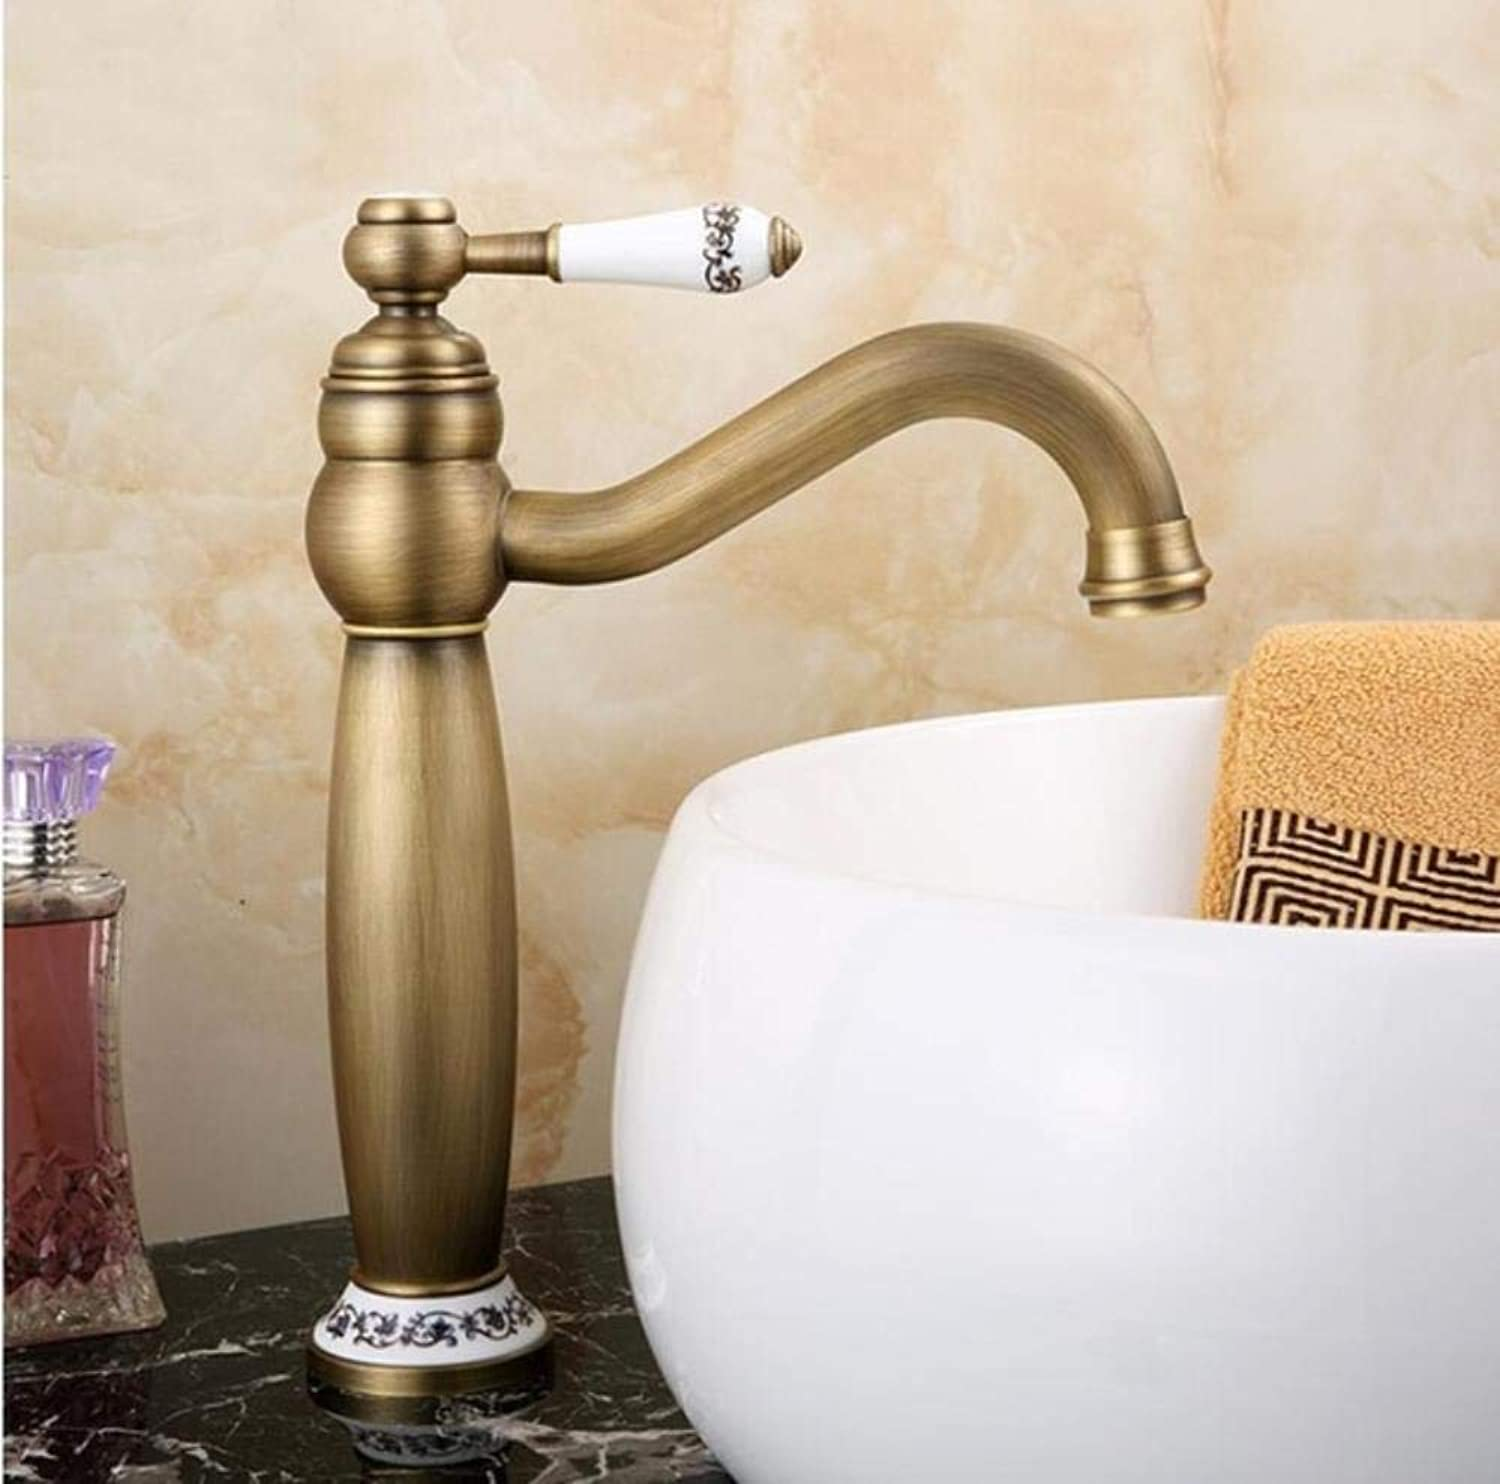 Kai&Guo Basin Faucets gold Solid Brass Bathroom Sink Faucet With Ceramic Single Handle Hole Wash basin Mixer Tap WC Taps,antique tall